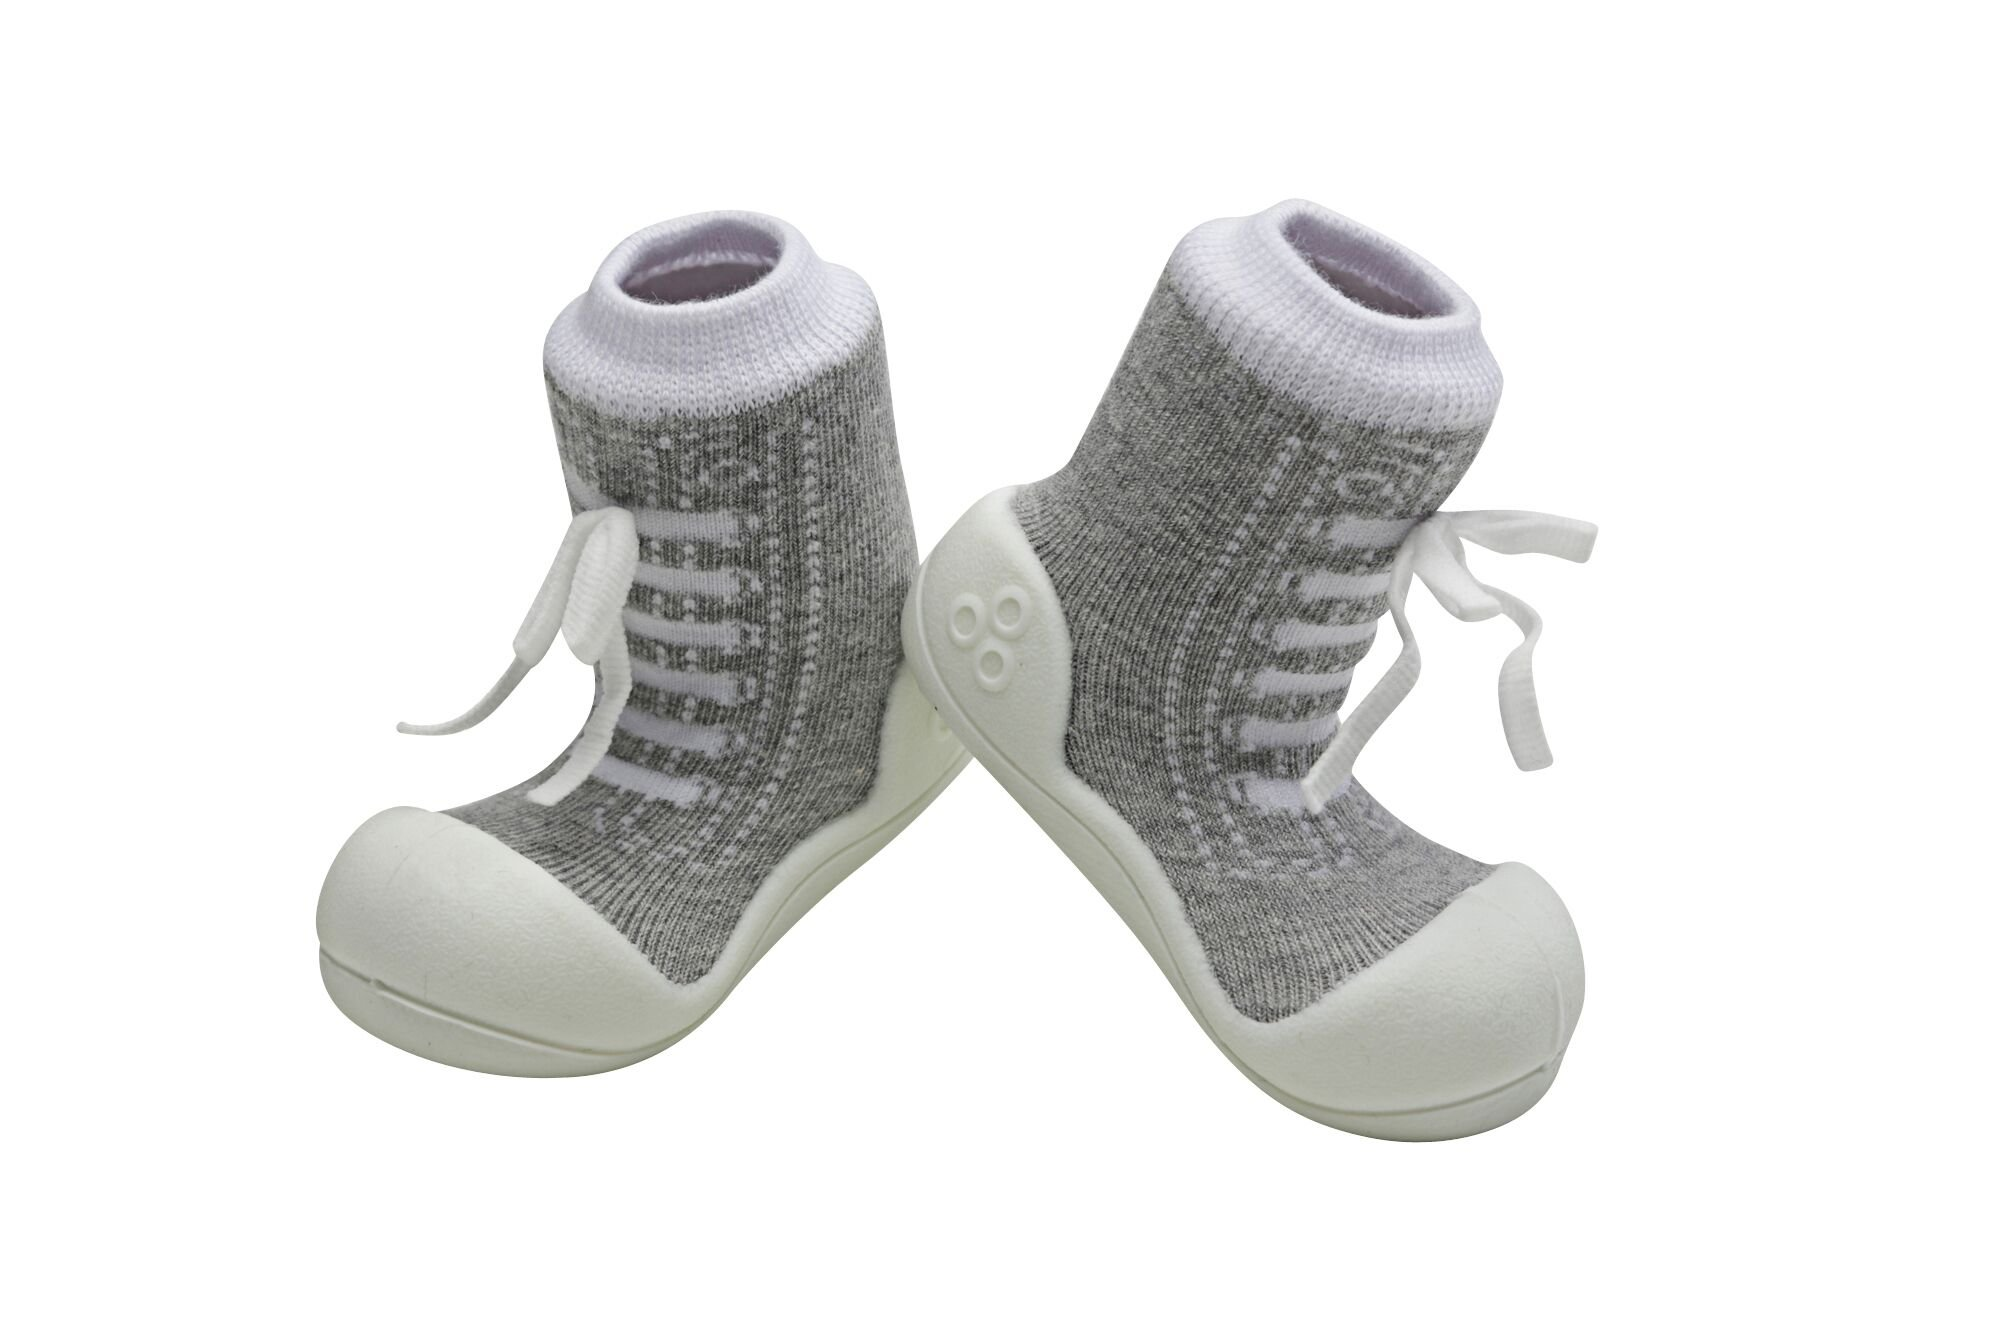 Attipas Best First Walker Shoes Baby Cotton Socks Shoes Non Toxic Safe Great Baby Registry Gifts (US Toddler 4.5, Sneakers Grey) by Attipas (Image #2)